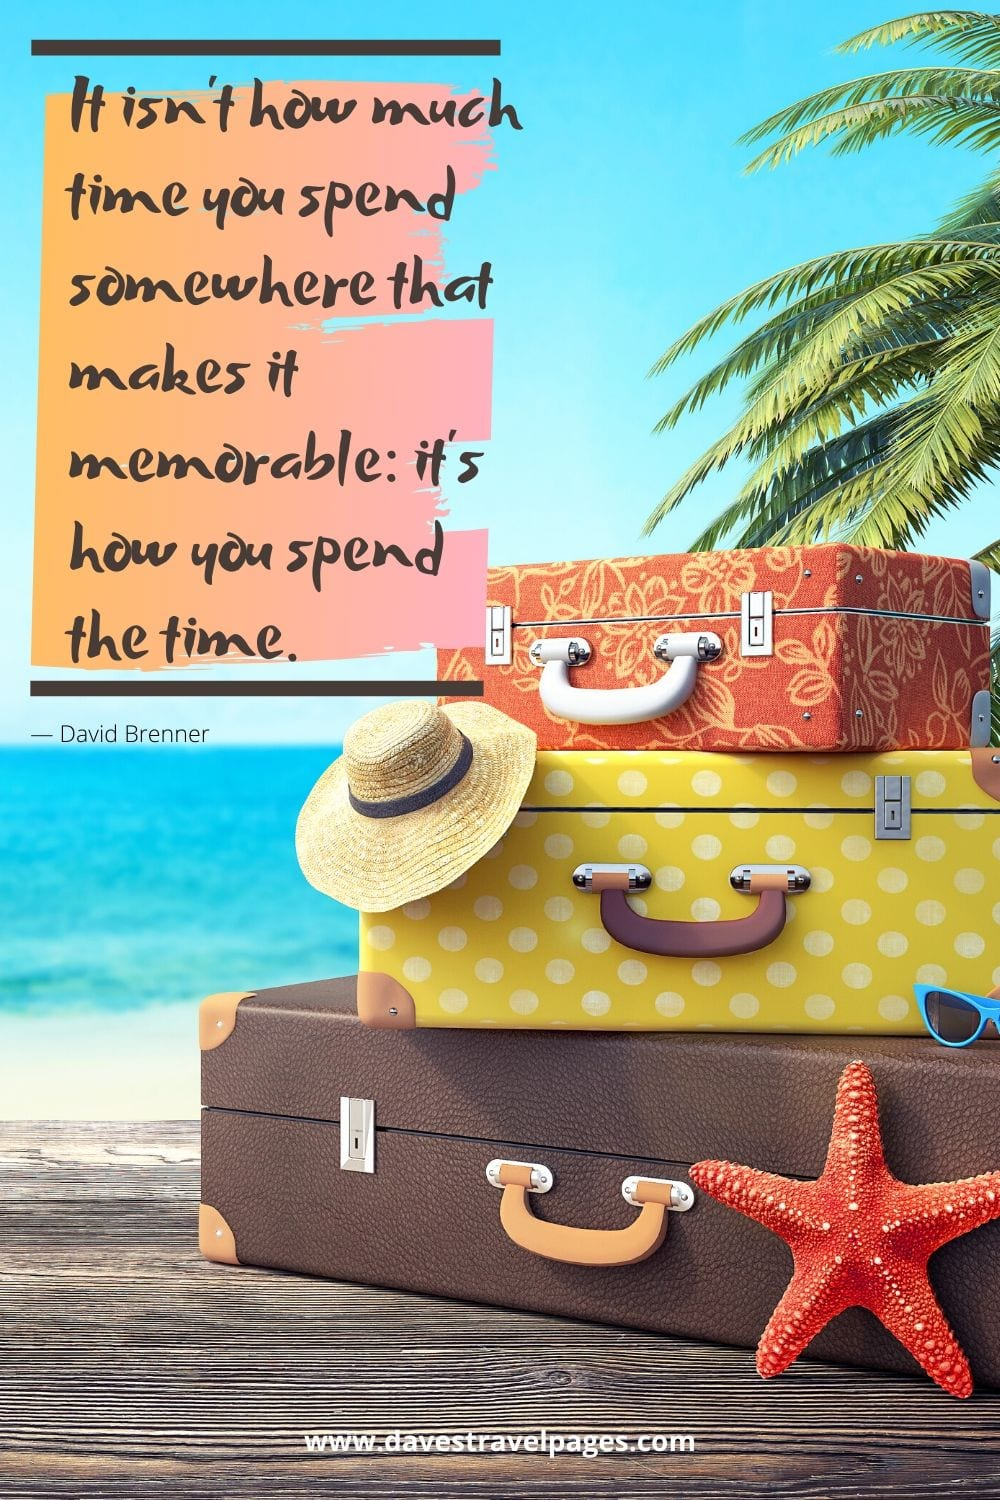 """Top quotes in travel: """"It isn't how much time you spend somewhere that makes it memorable: it's how you spend the time."""" — David Brenner"""